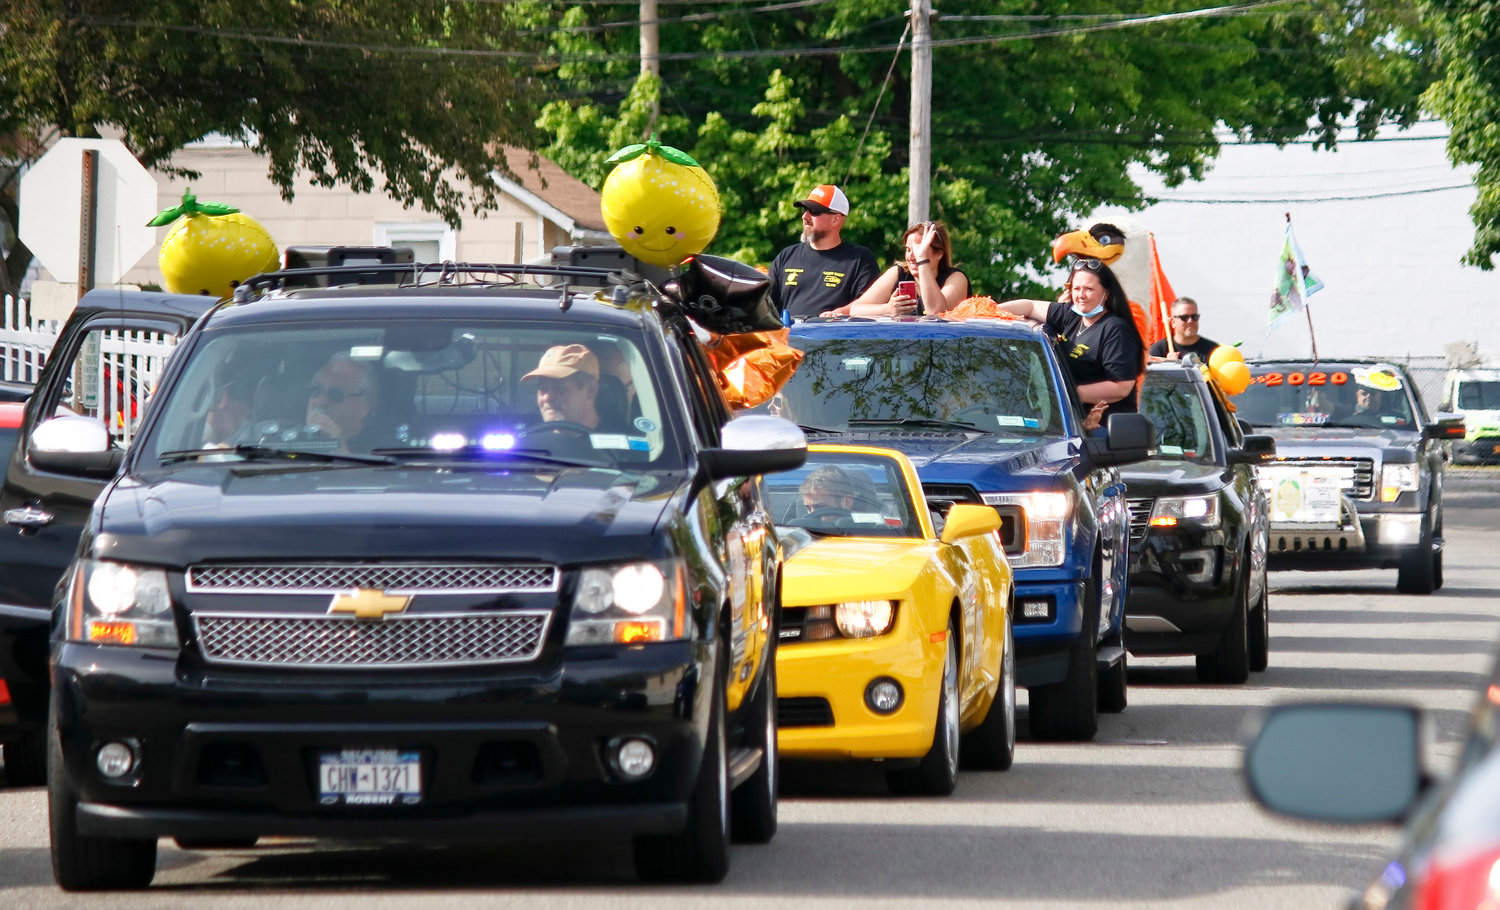 The H. Frank Carey Dads' Club's Lemonade Parade cruised down Pacific Street on May 16.